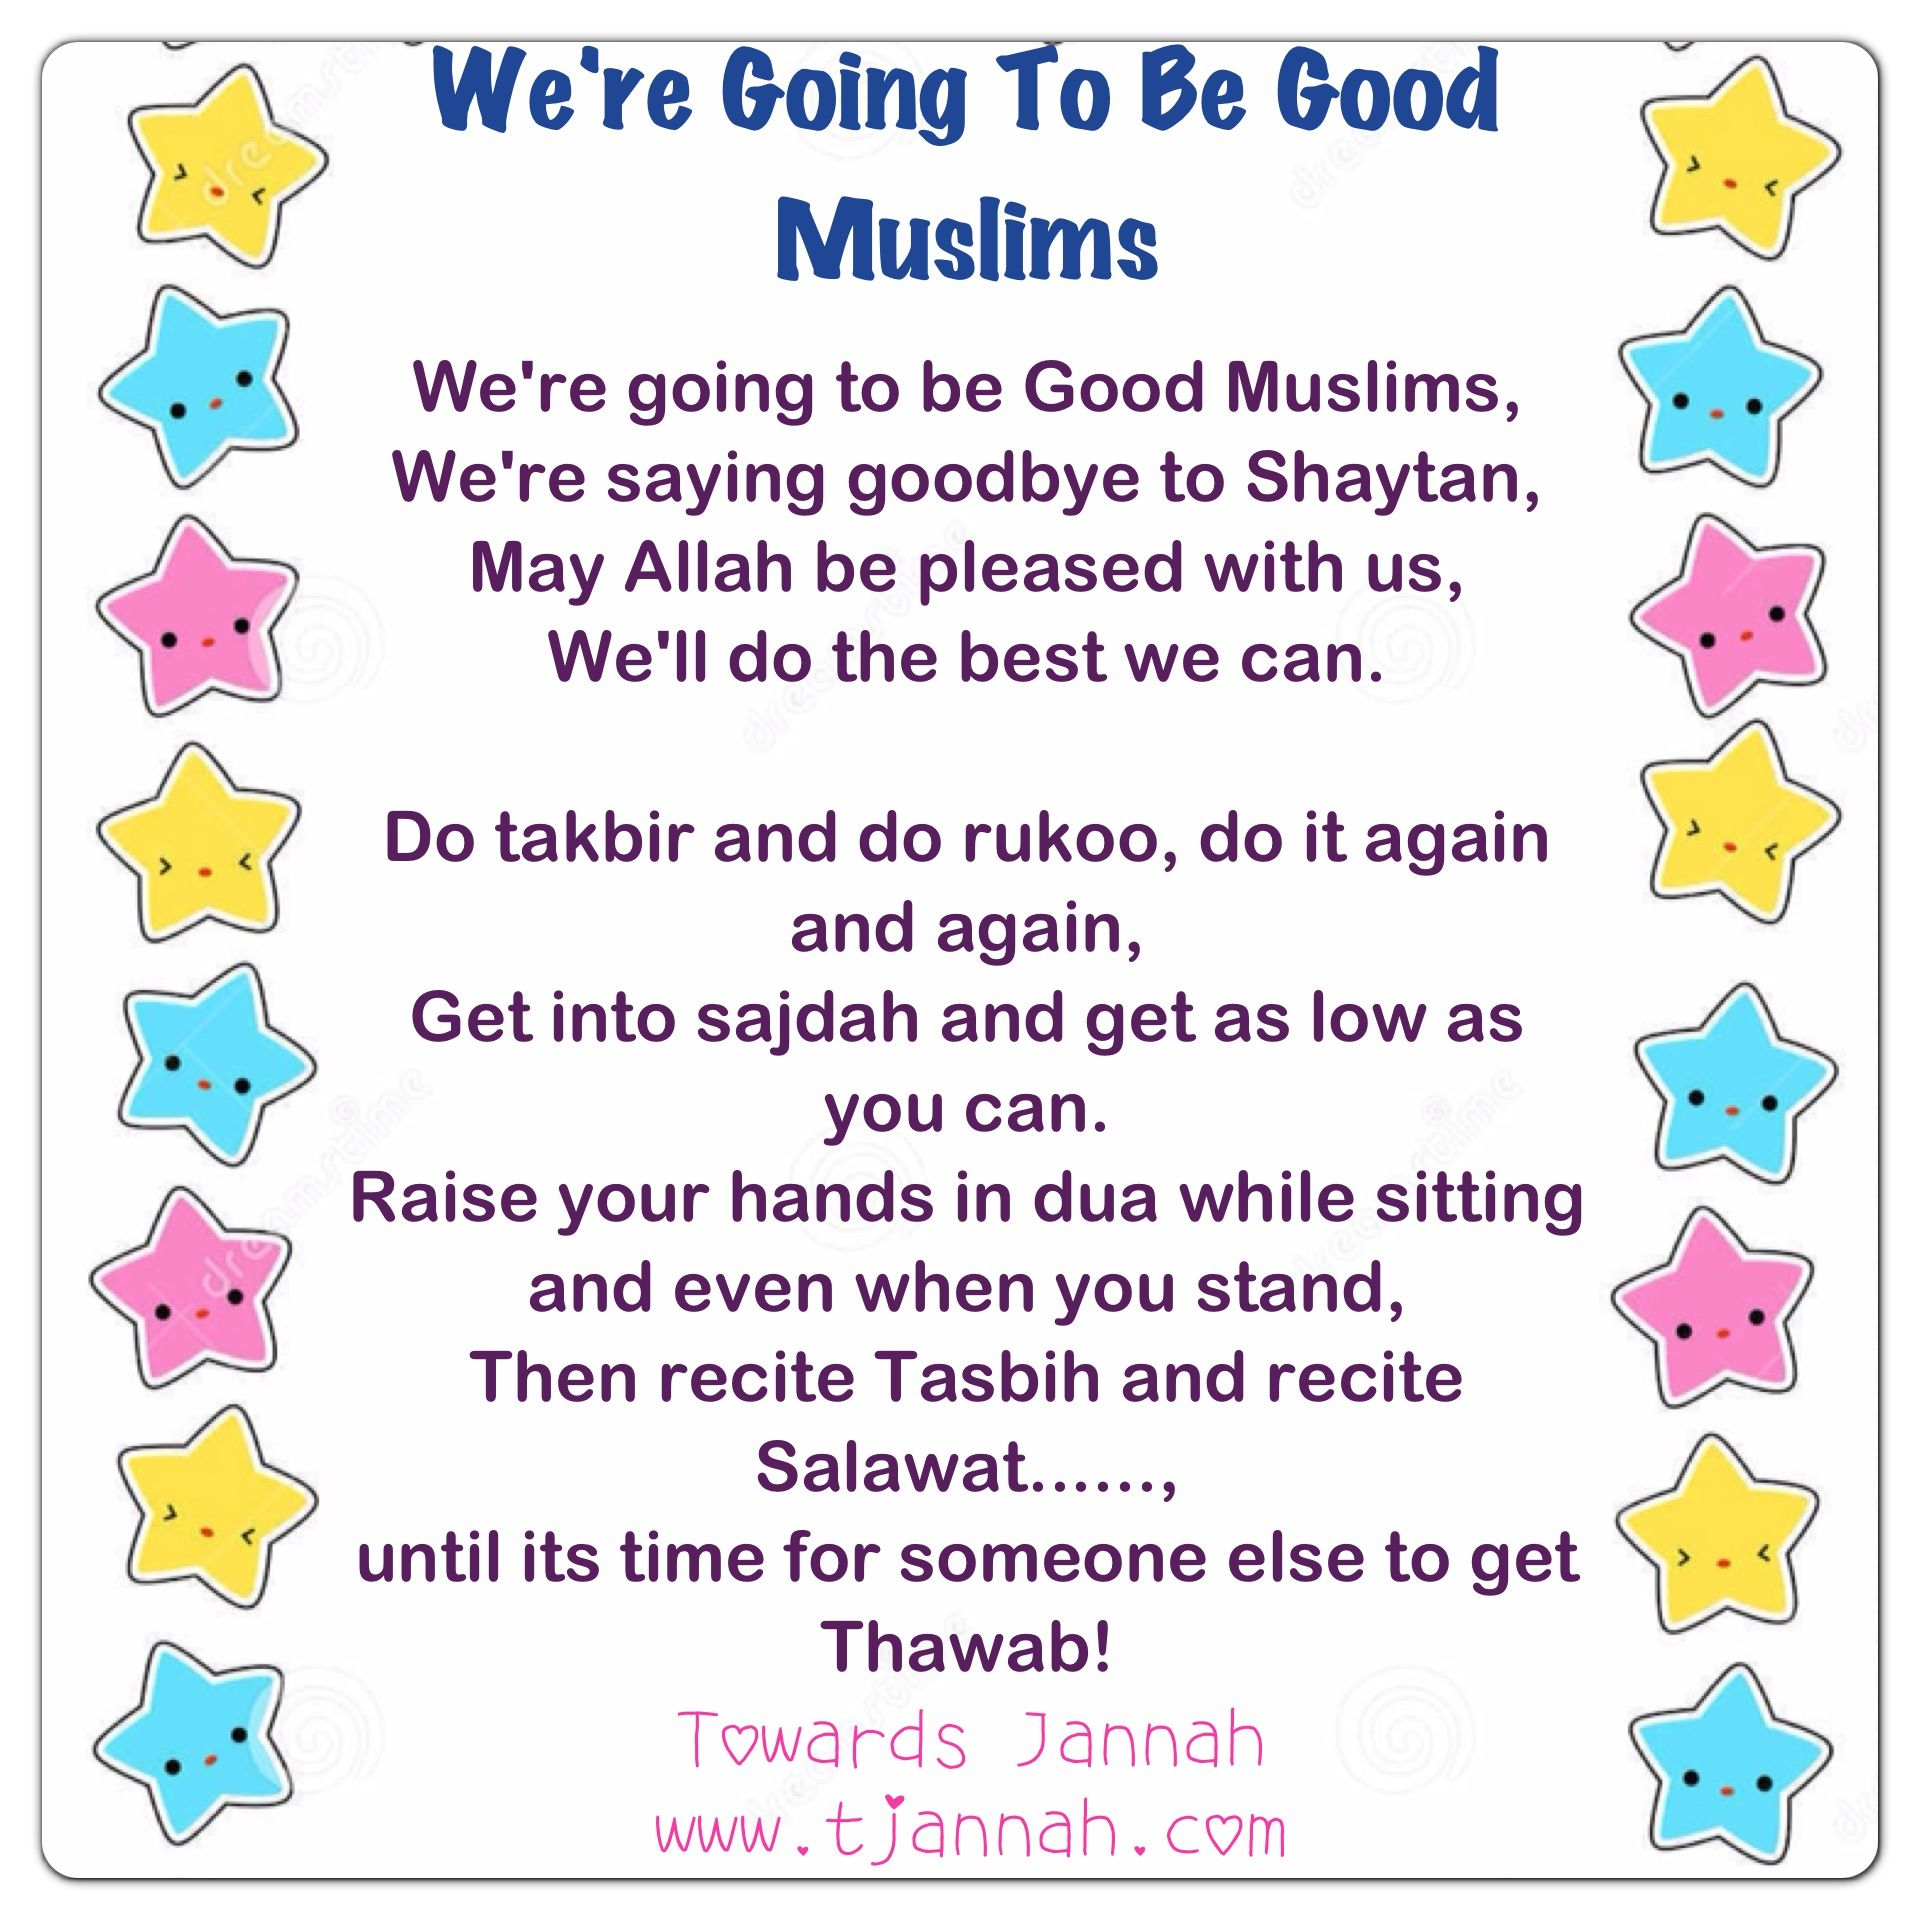 Ramadhan Rhyme Sung To The Tune Of We Re Going To Kentucky To See A Senorita In This Rhyme